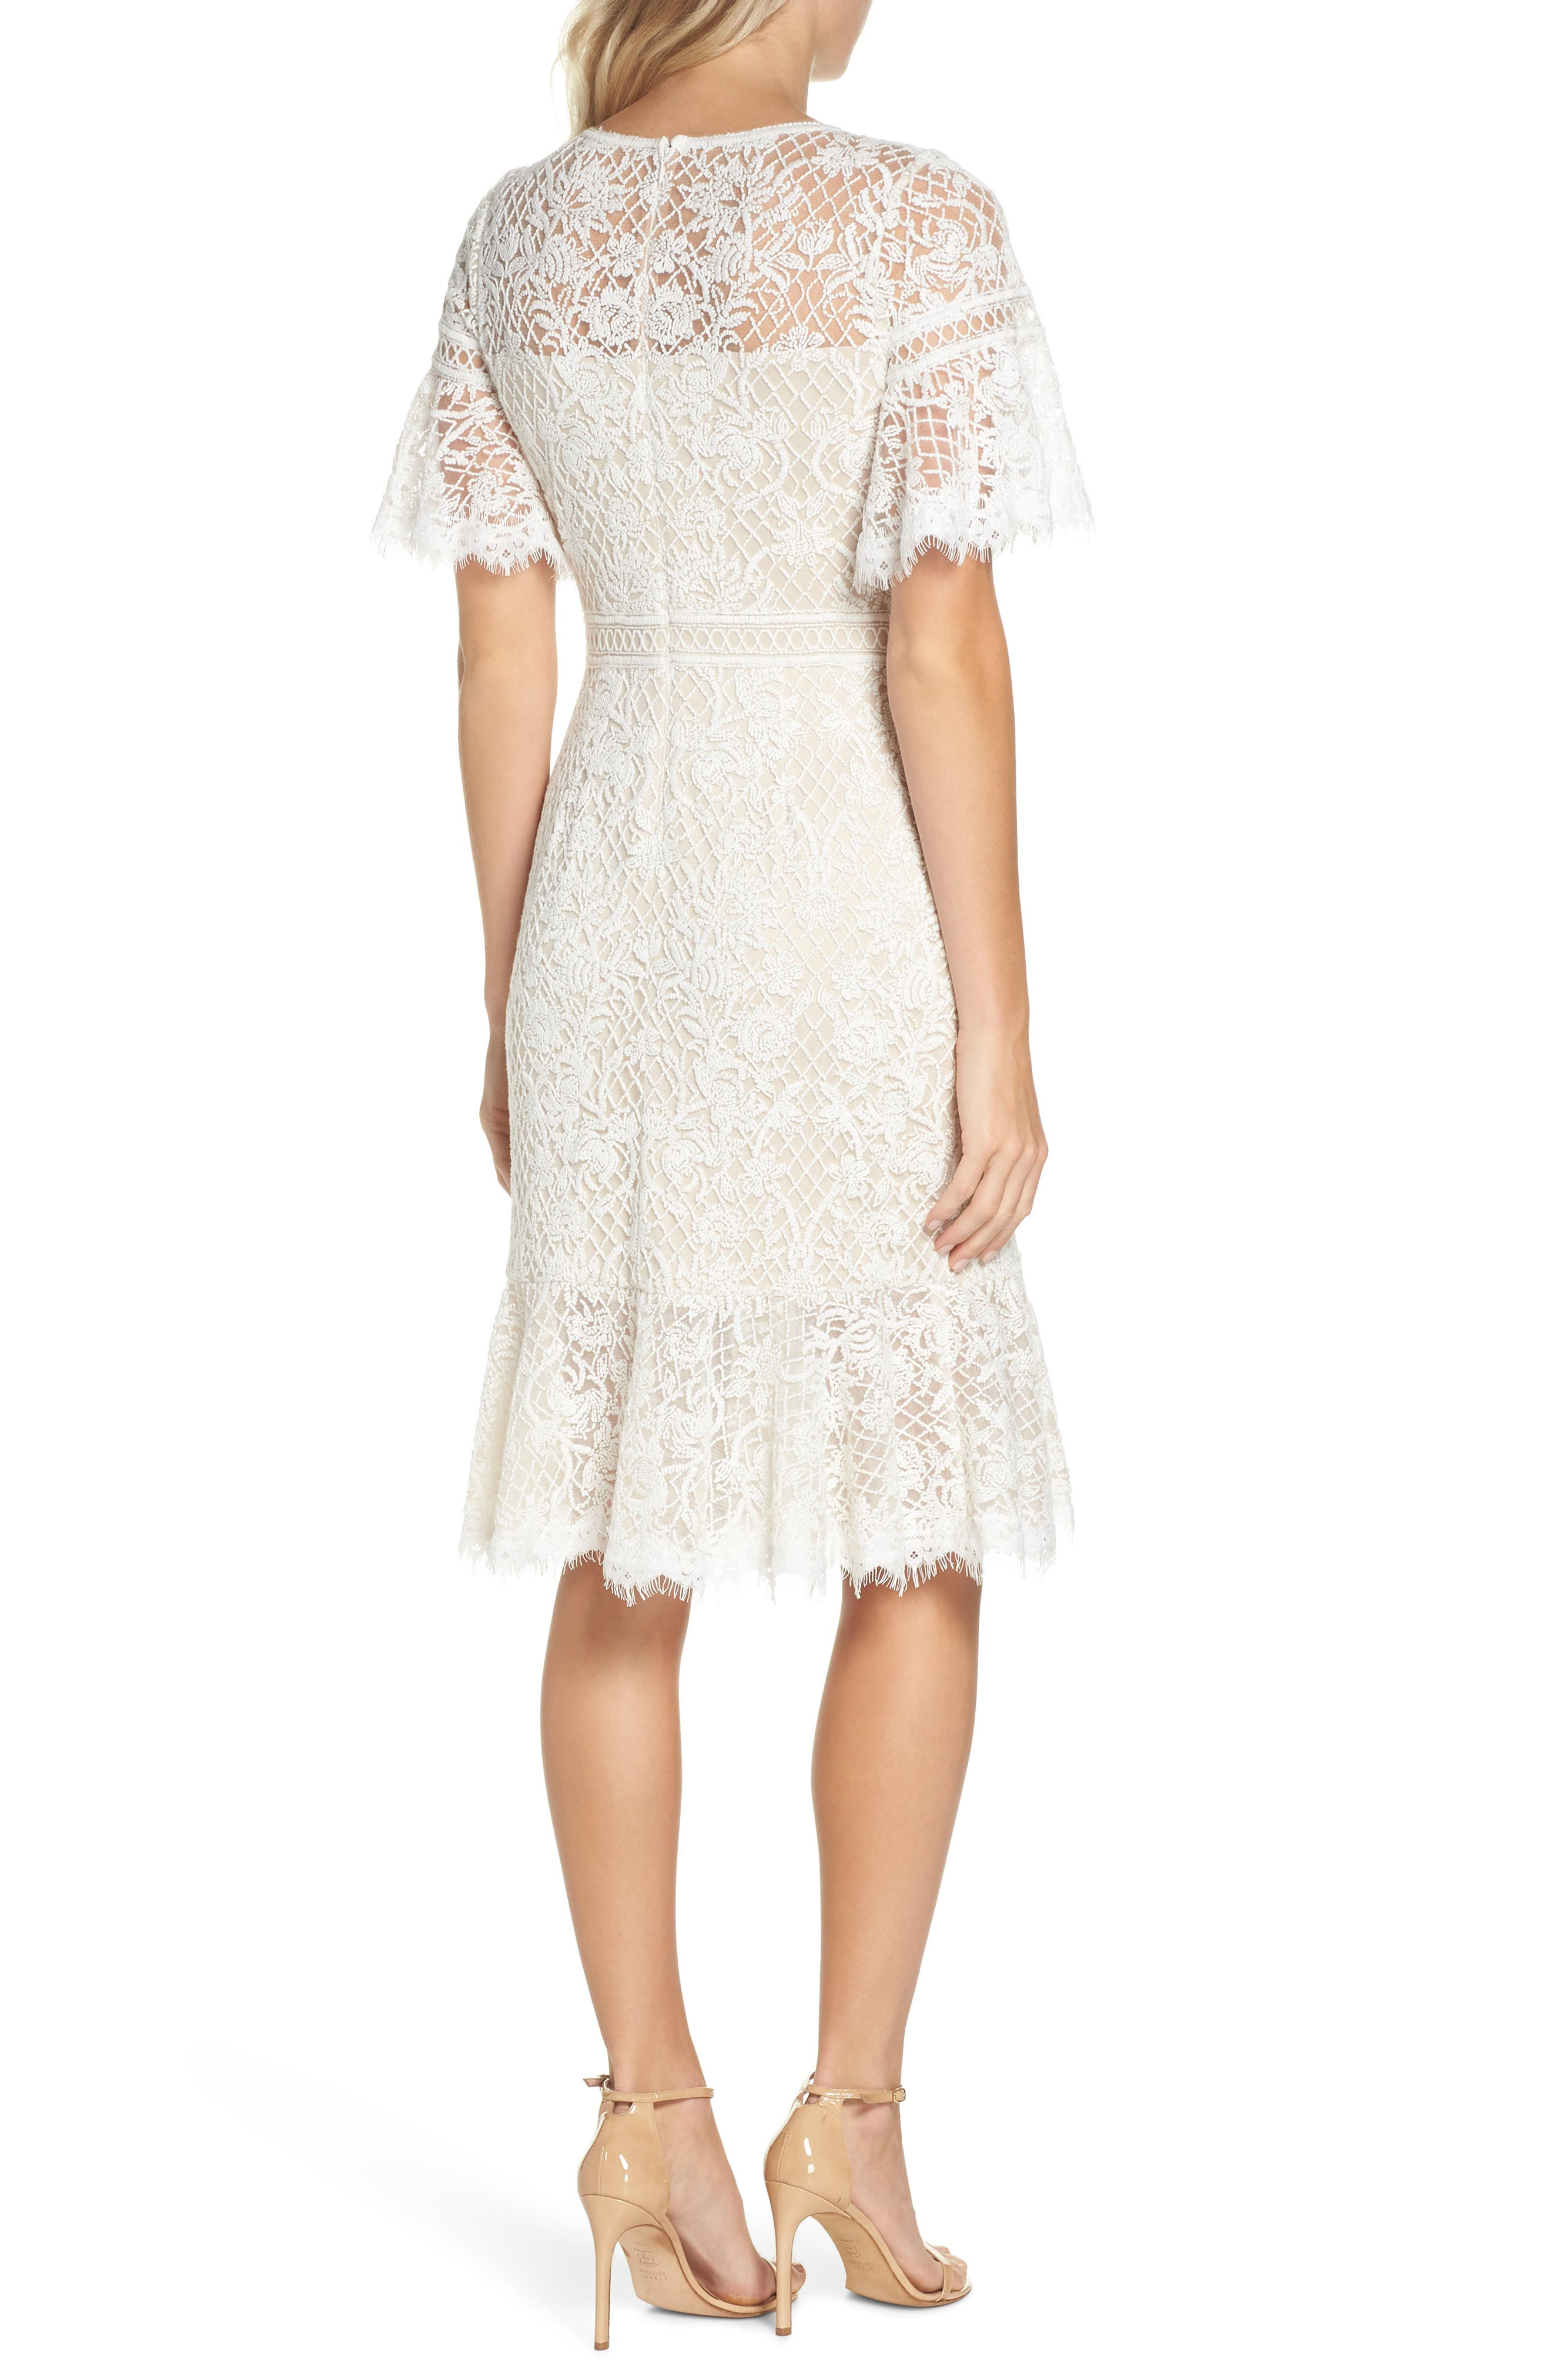 Embroidered Mesh Dress,                             Alternate thumbnail 2, color,                             IVORY/ NATURAL